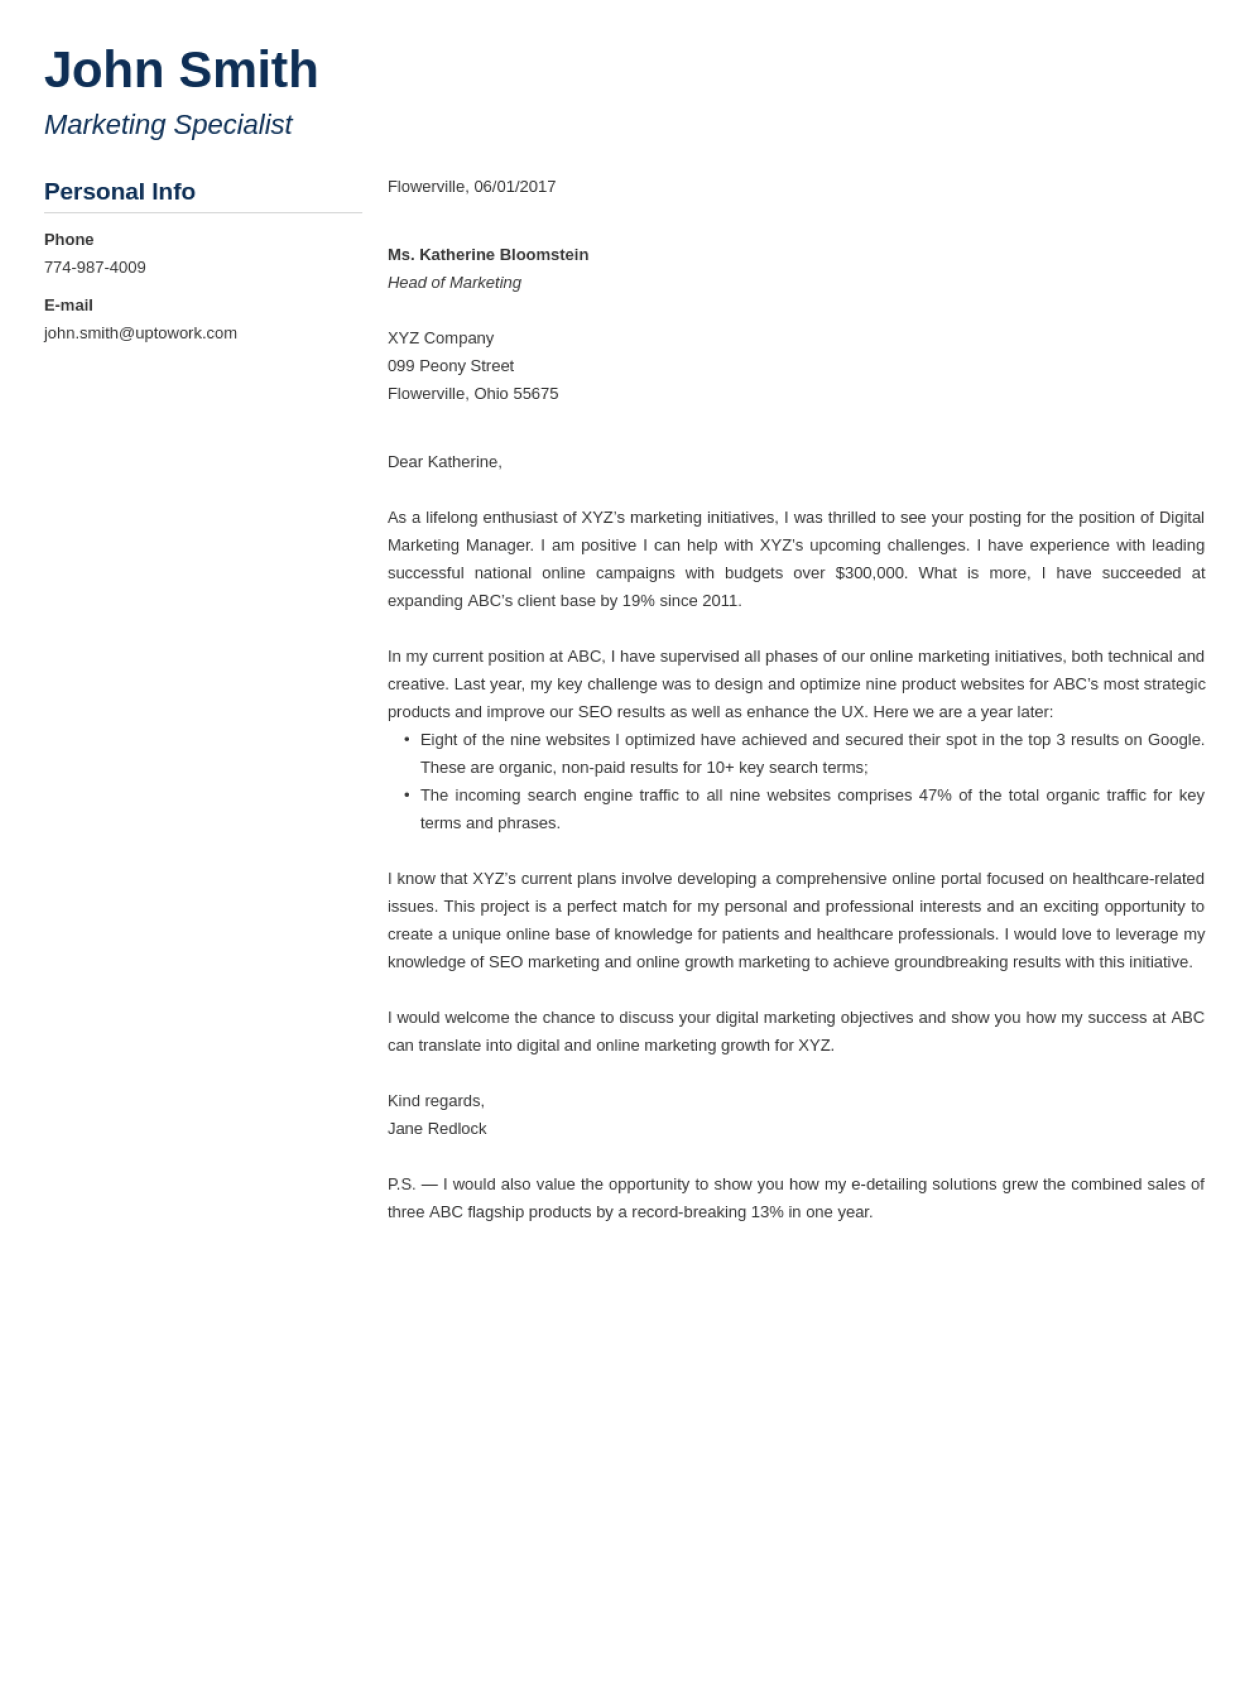 Cover Letter Example Template from cdn-images.resumelab.com